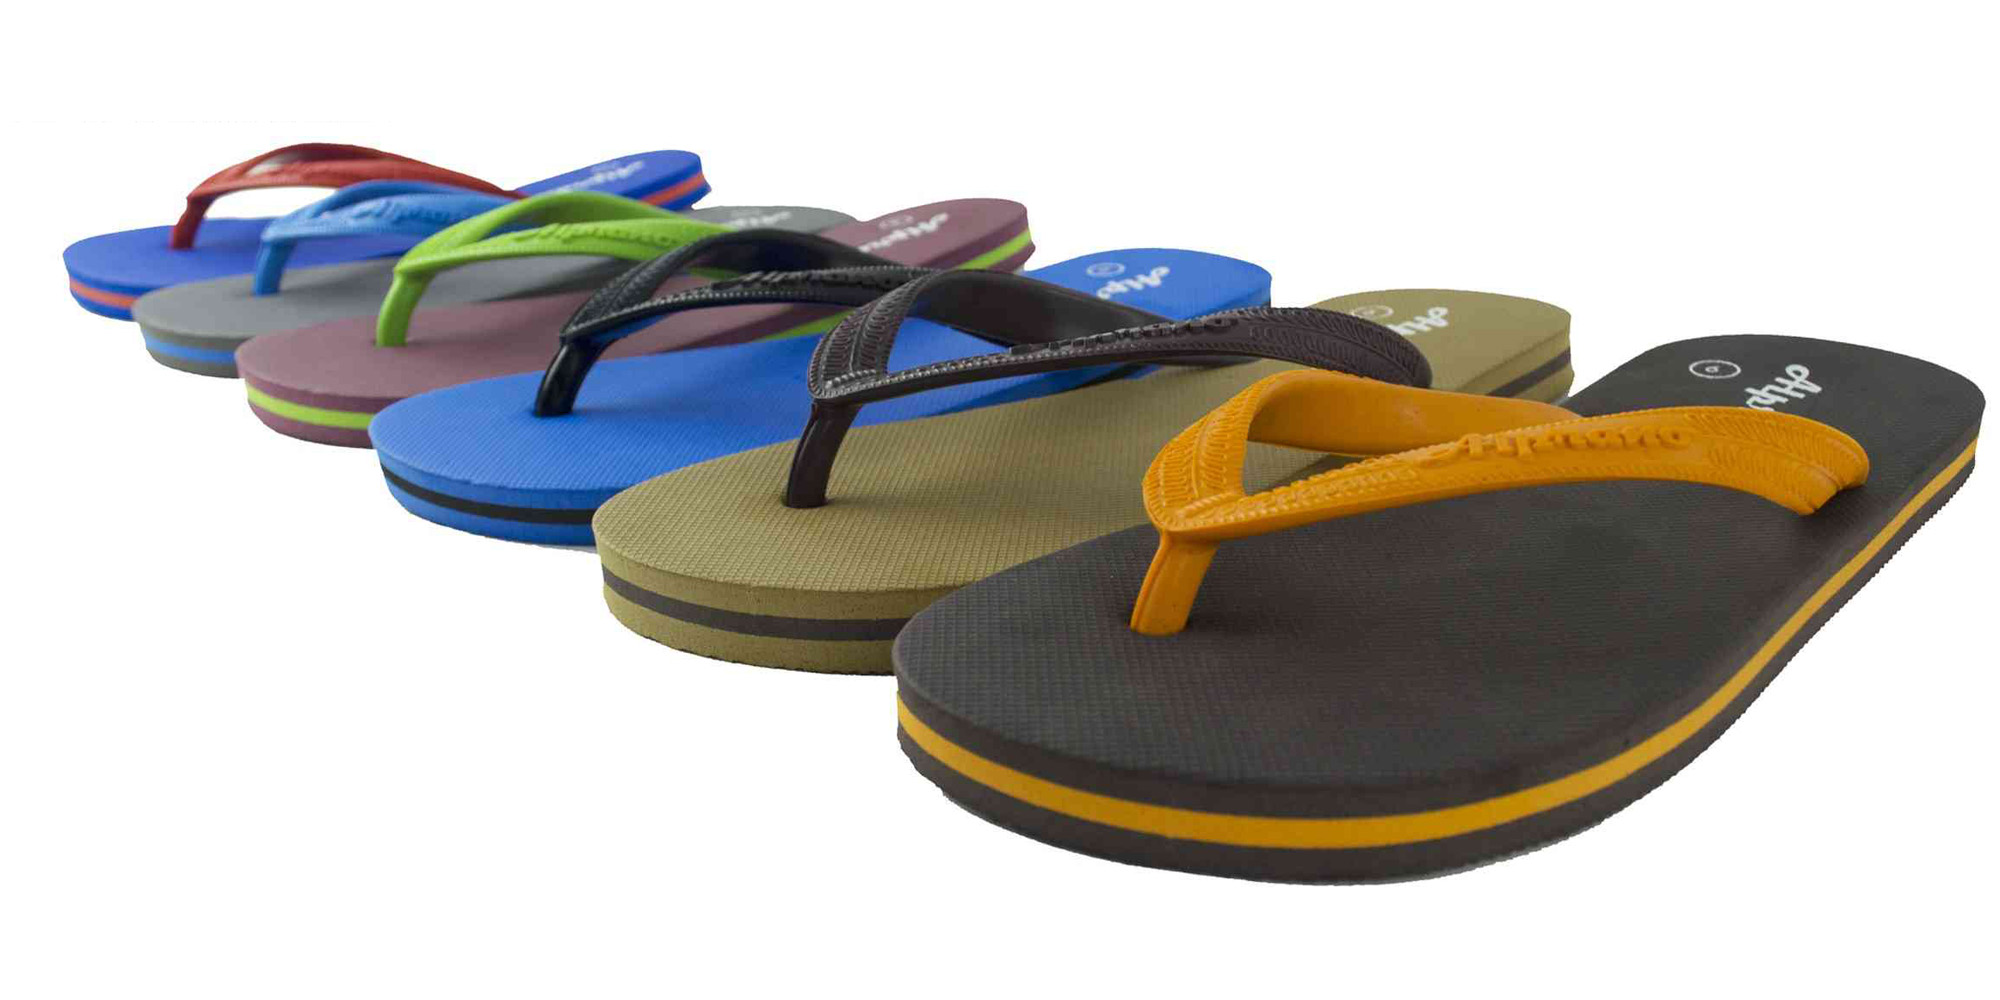 JN-APL06 (UK7) Alprano Slipper